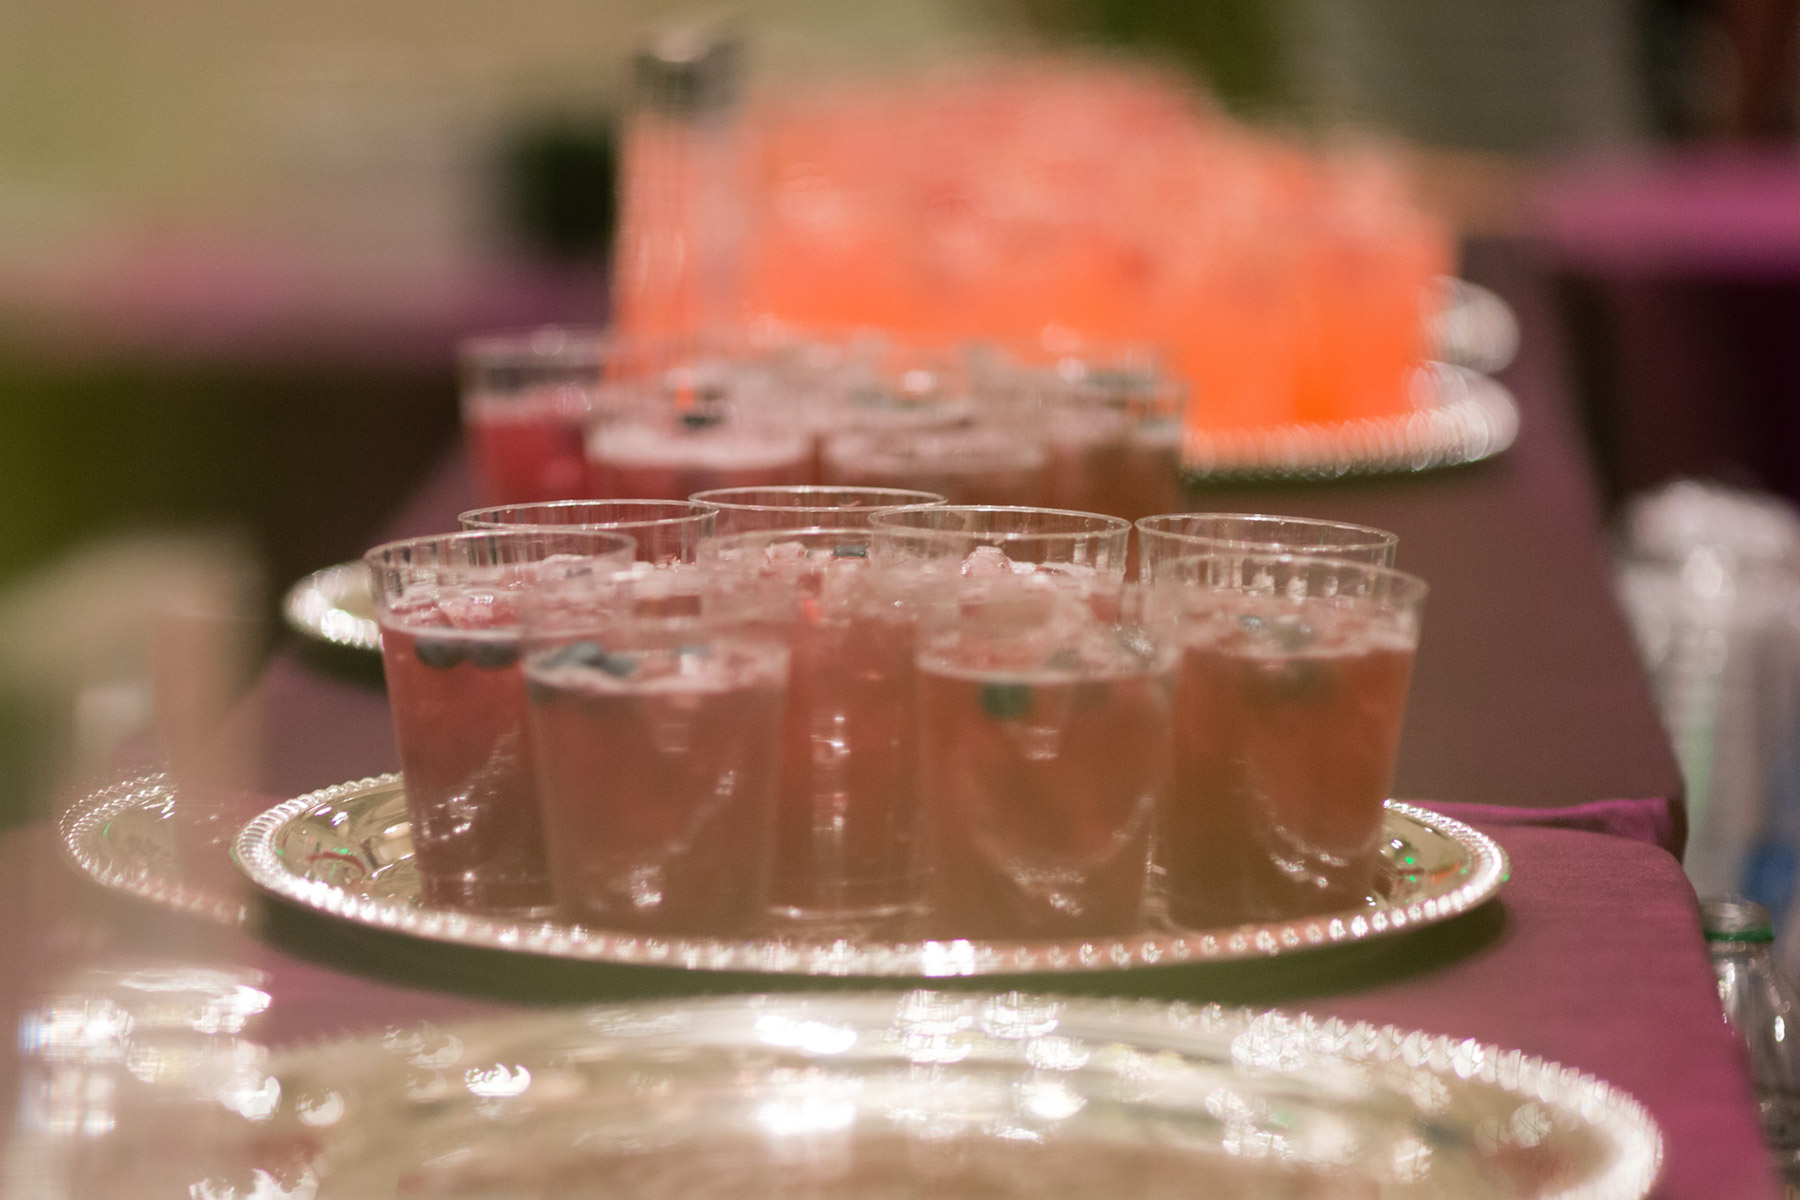 A group of non-alcoholic, colorful drinks on a silver tray